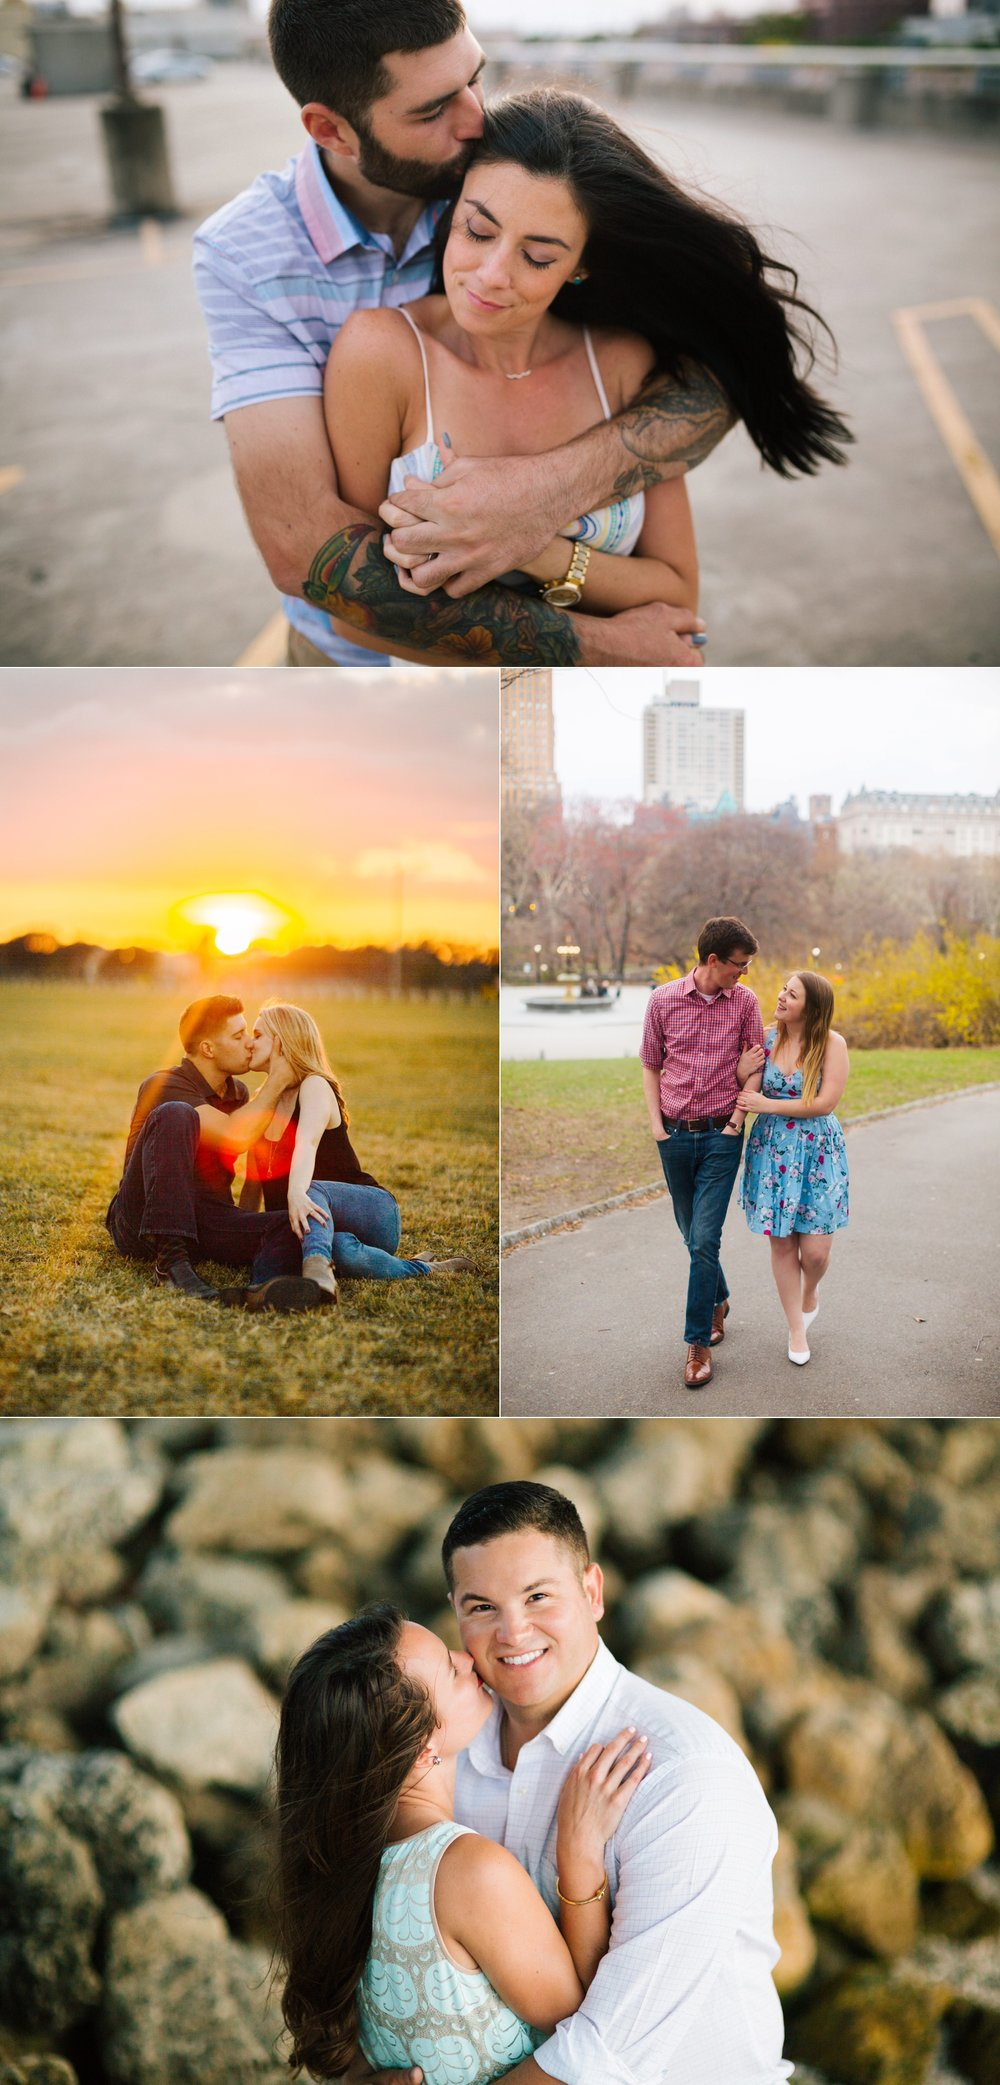 Jake & Katie Photography Best of Couples 2016-002.jpg